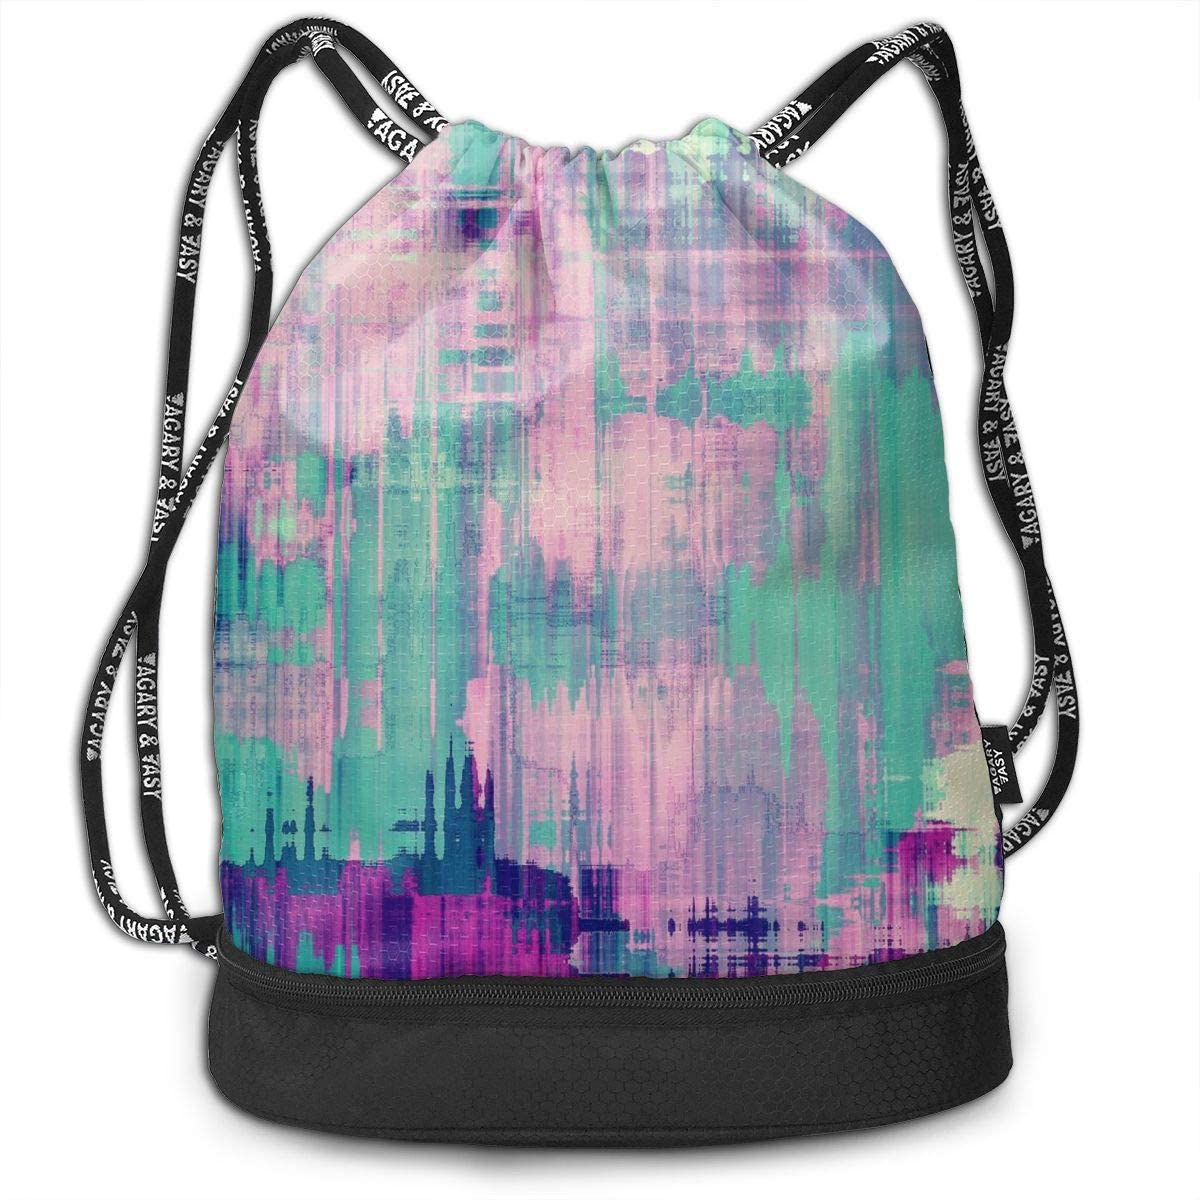 Bundle Backpacks Grunge Colorful Background Gym Sack Drawstring Bags Casual Daypack Yoga Bag School Training Pouch